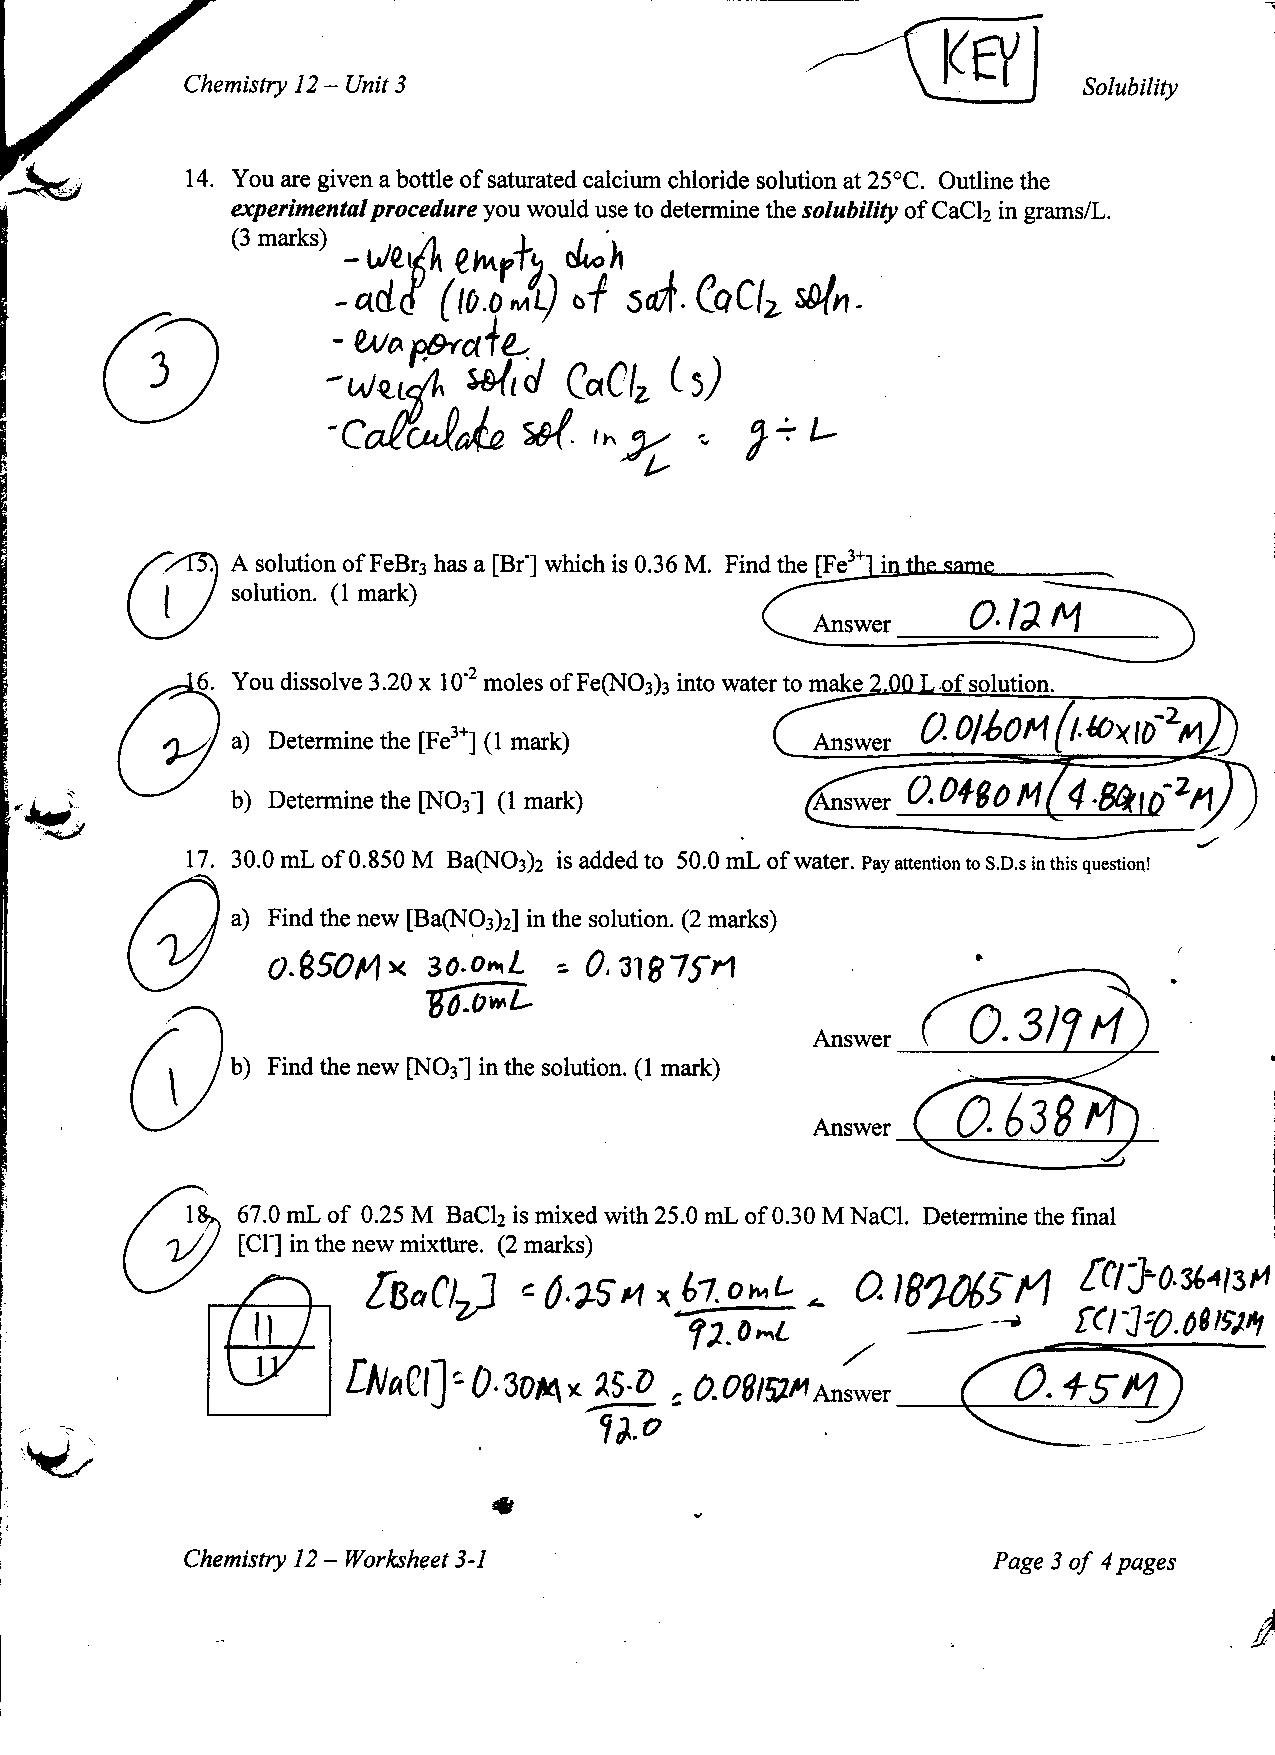 Chemistry Unit 6 Worksheet 1 Answer Key